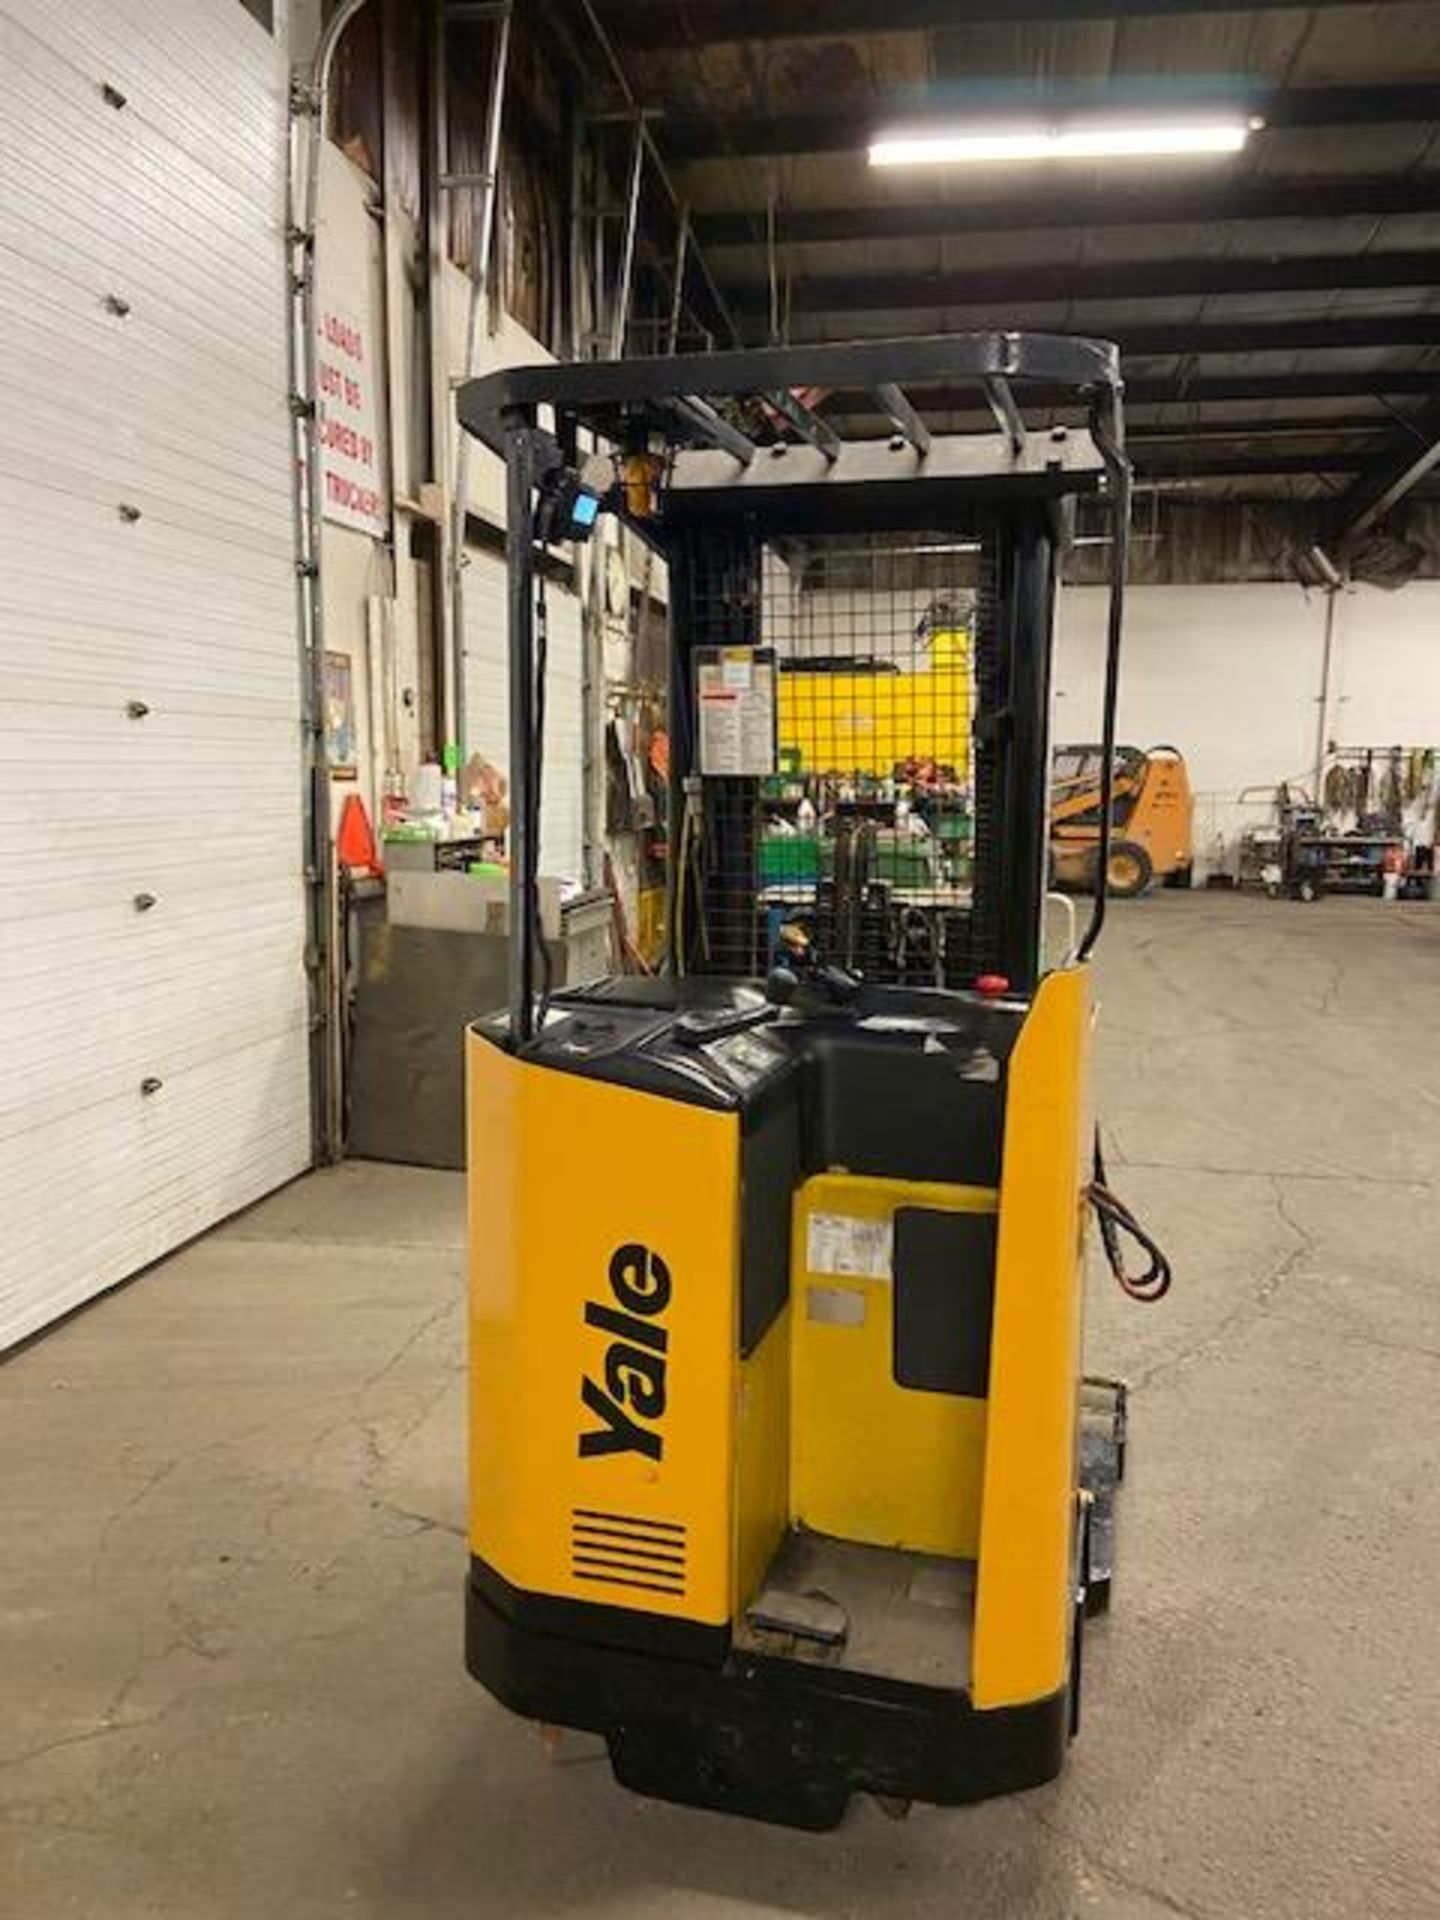 FREE CUSTOMS - Yale Reach Truck Pallet Lifter REACH TRUCK electric 4000lbs with sideshift 3-stage - Image 5 of 7